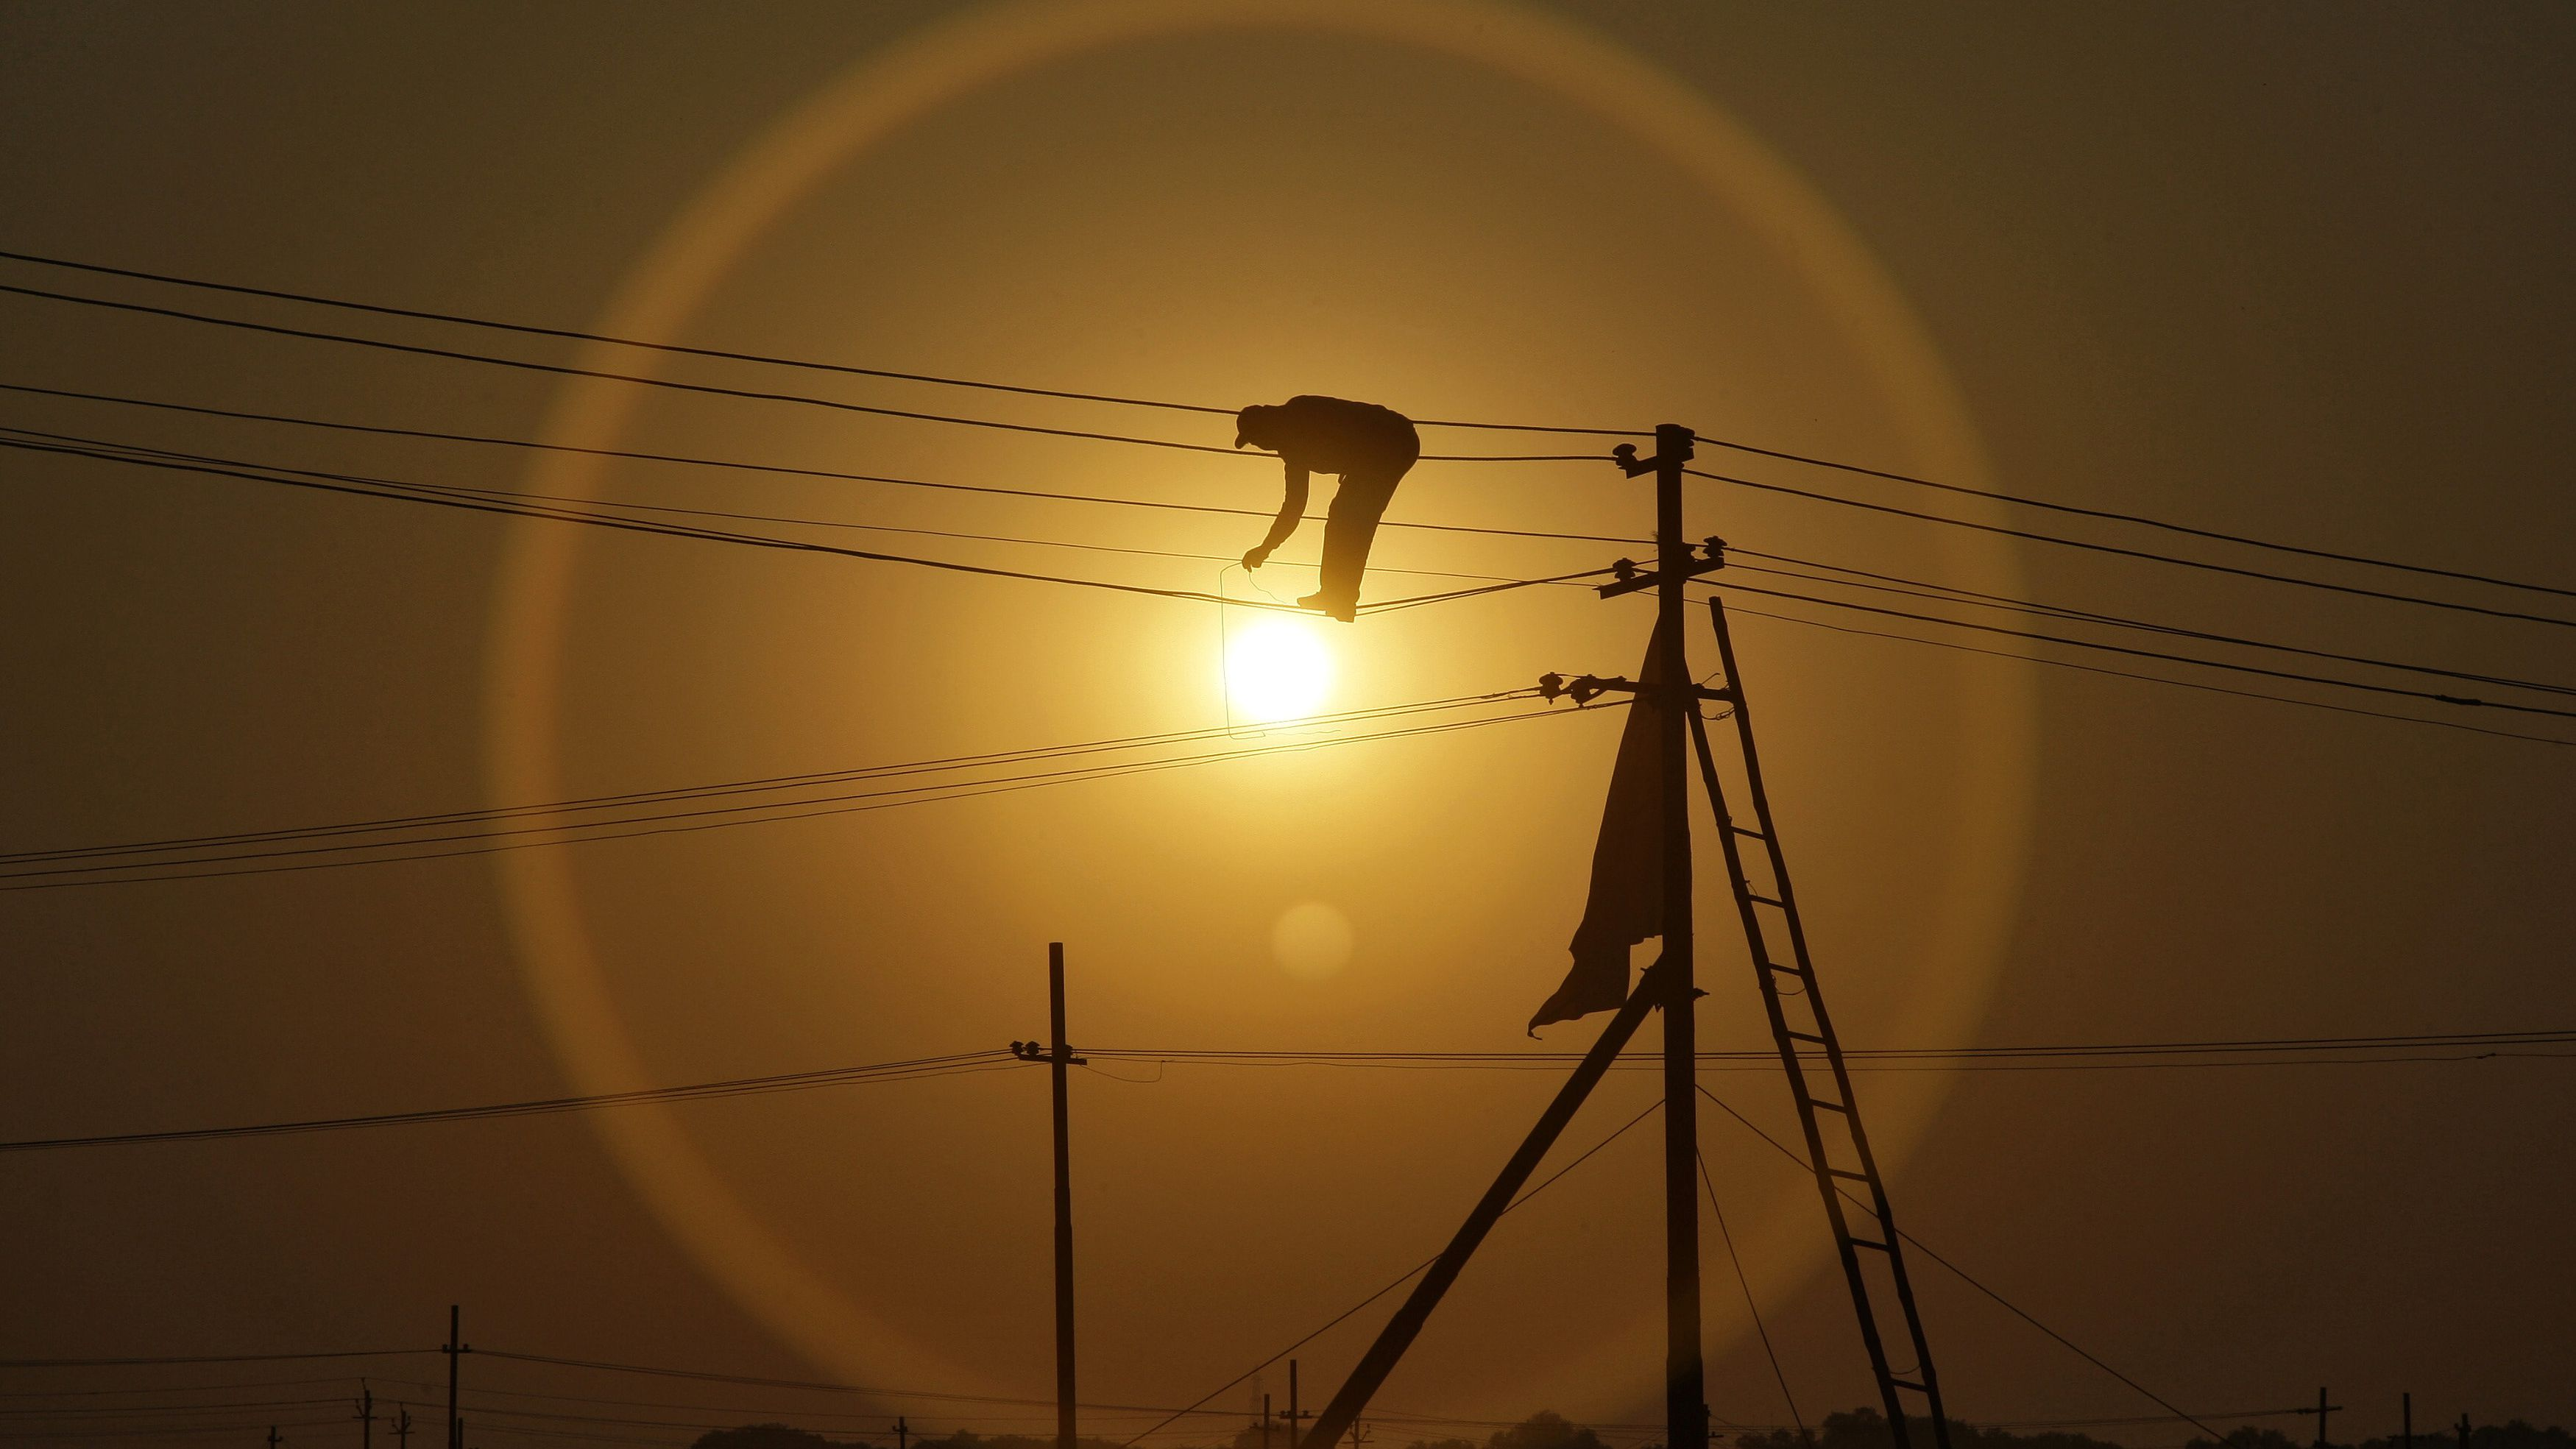 """An employee from the electricity board works on newly installed overhead power cables ahead of the """"Kumbh Mela"""", or Pitcher Festival, as the sun sets in the northern Indian city of Allahabad December 7, 2012. REUTERS/Jitendra Prakash (INDIA - Tags: ENERGY BUSINESS EMPLOYMENT TPX IMAGES OF THE DAY)"""